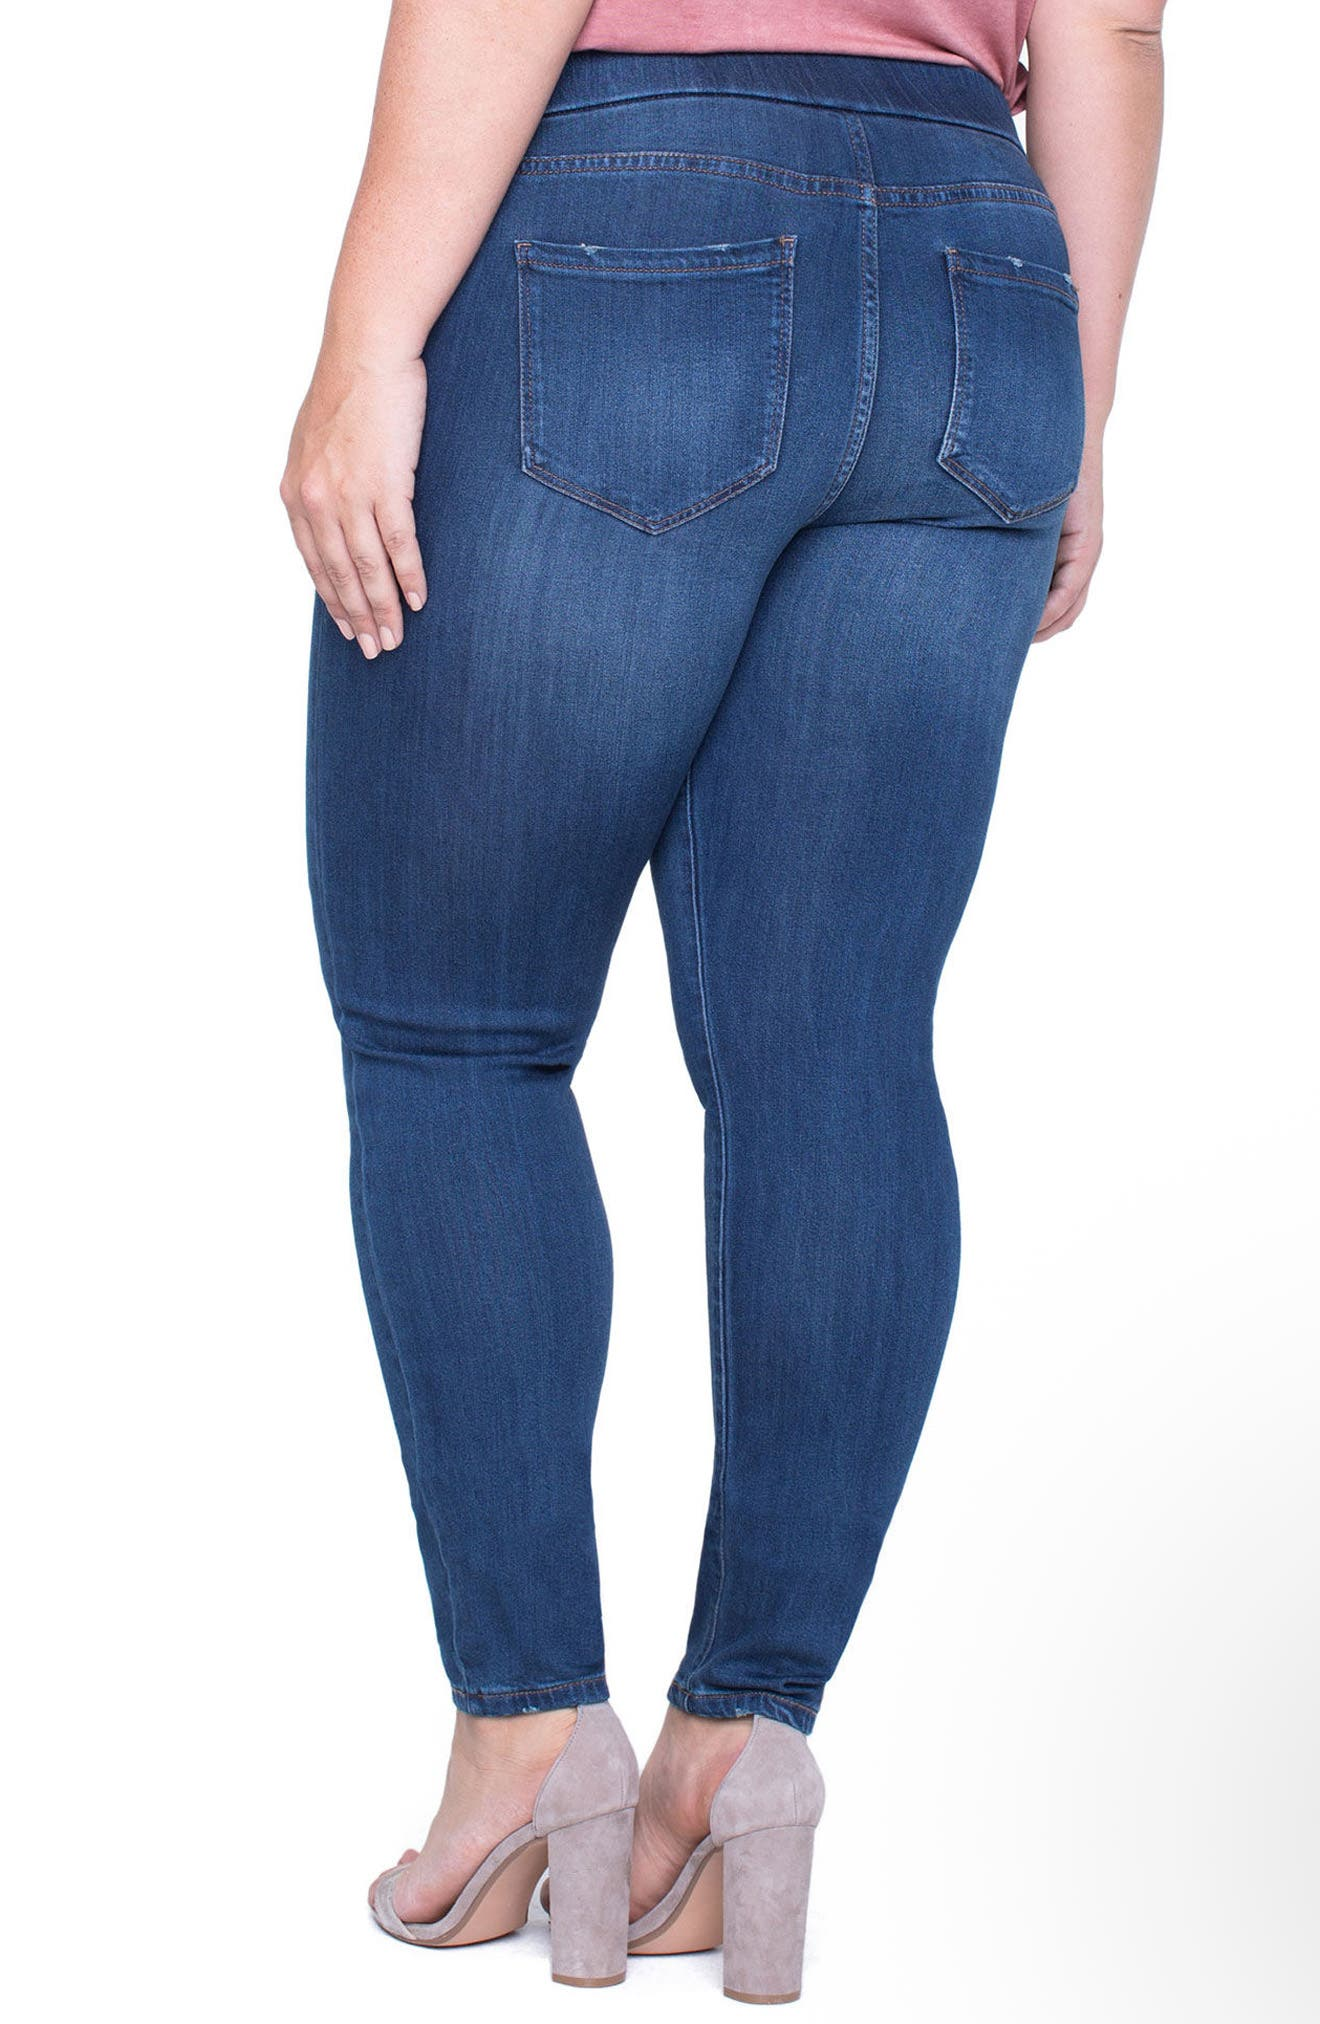 Sienna Knit Denim Leggings,                             Alternate thumbnail 4, color,